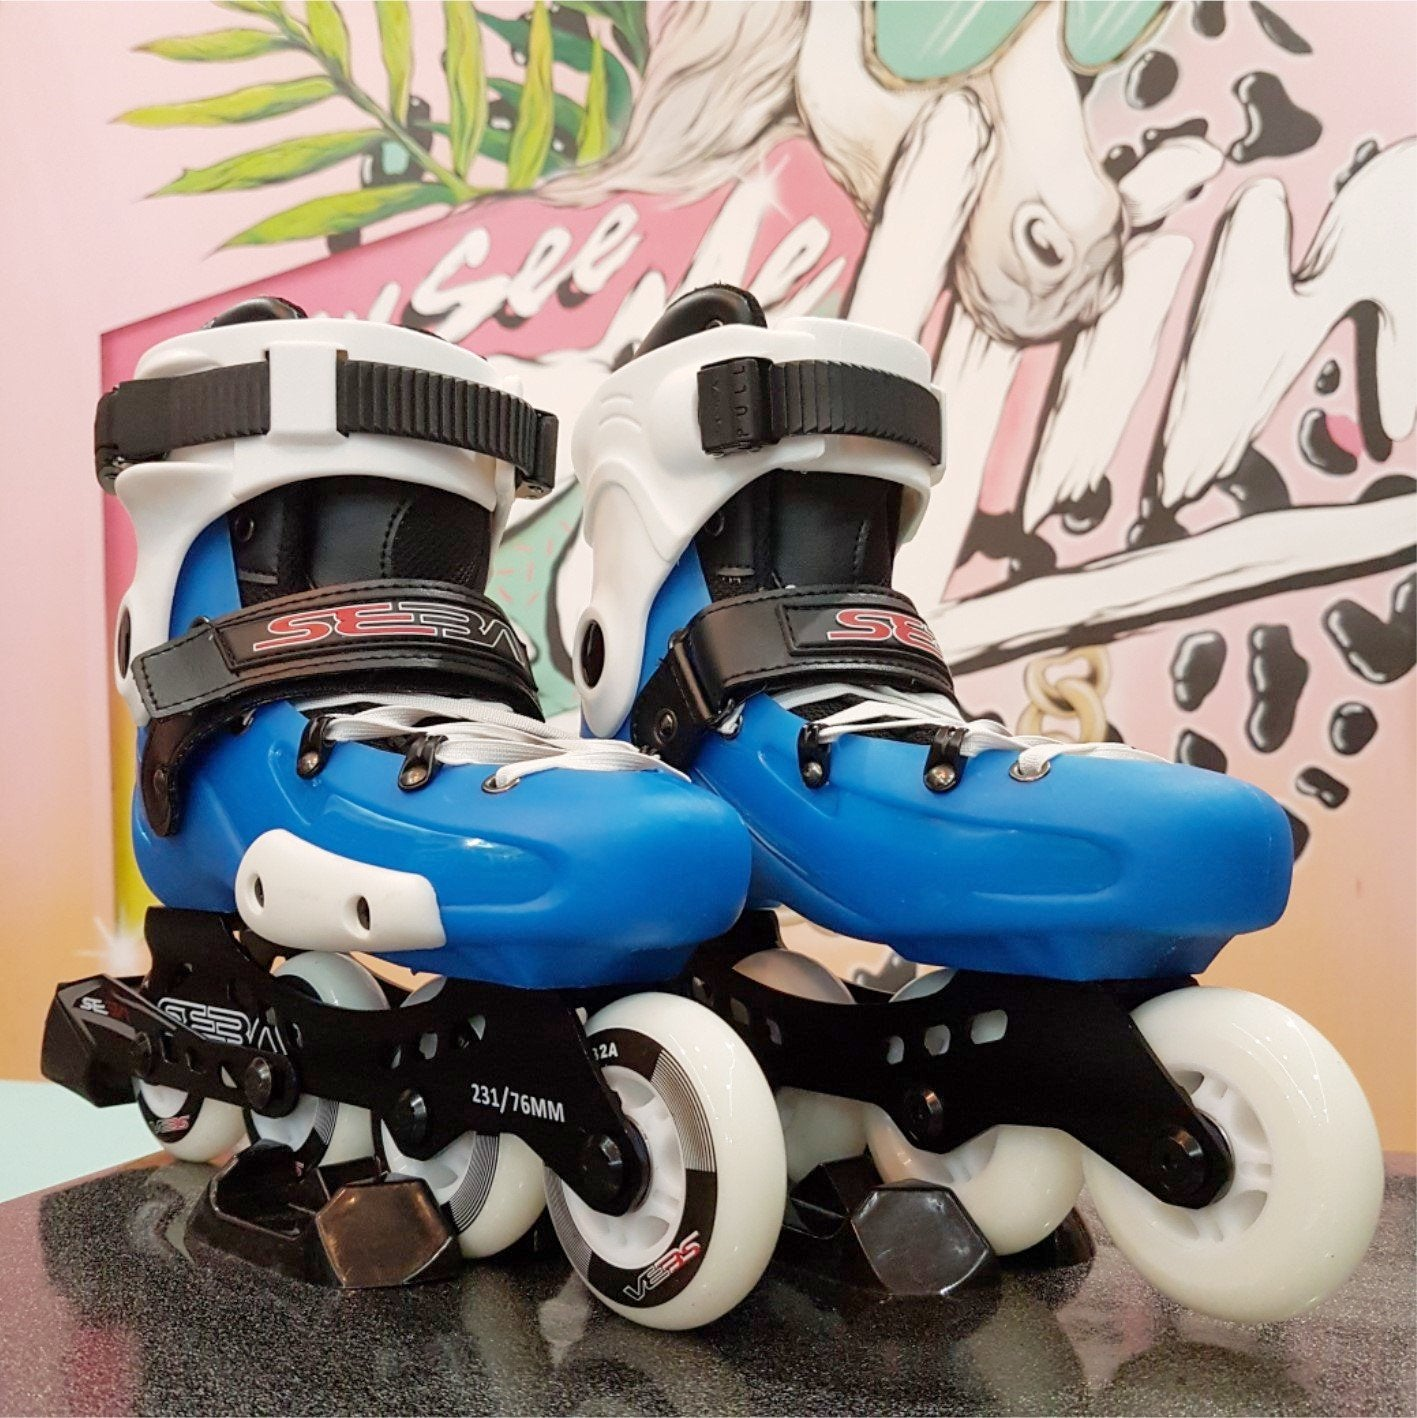 d90bfdcfd9 Seba FRX Junior Blue Adjustable Inlines  Last Pairs  Size 3-5 ...